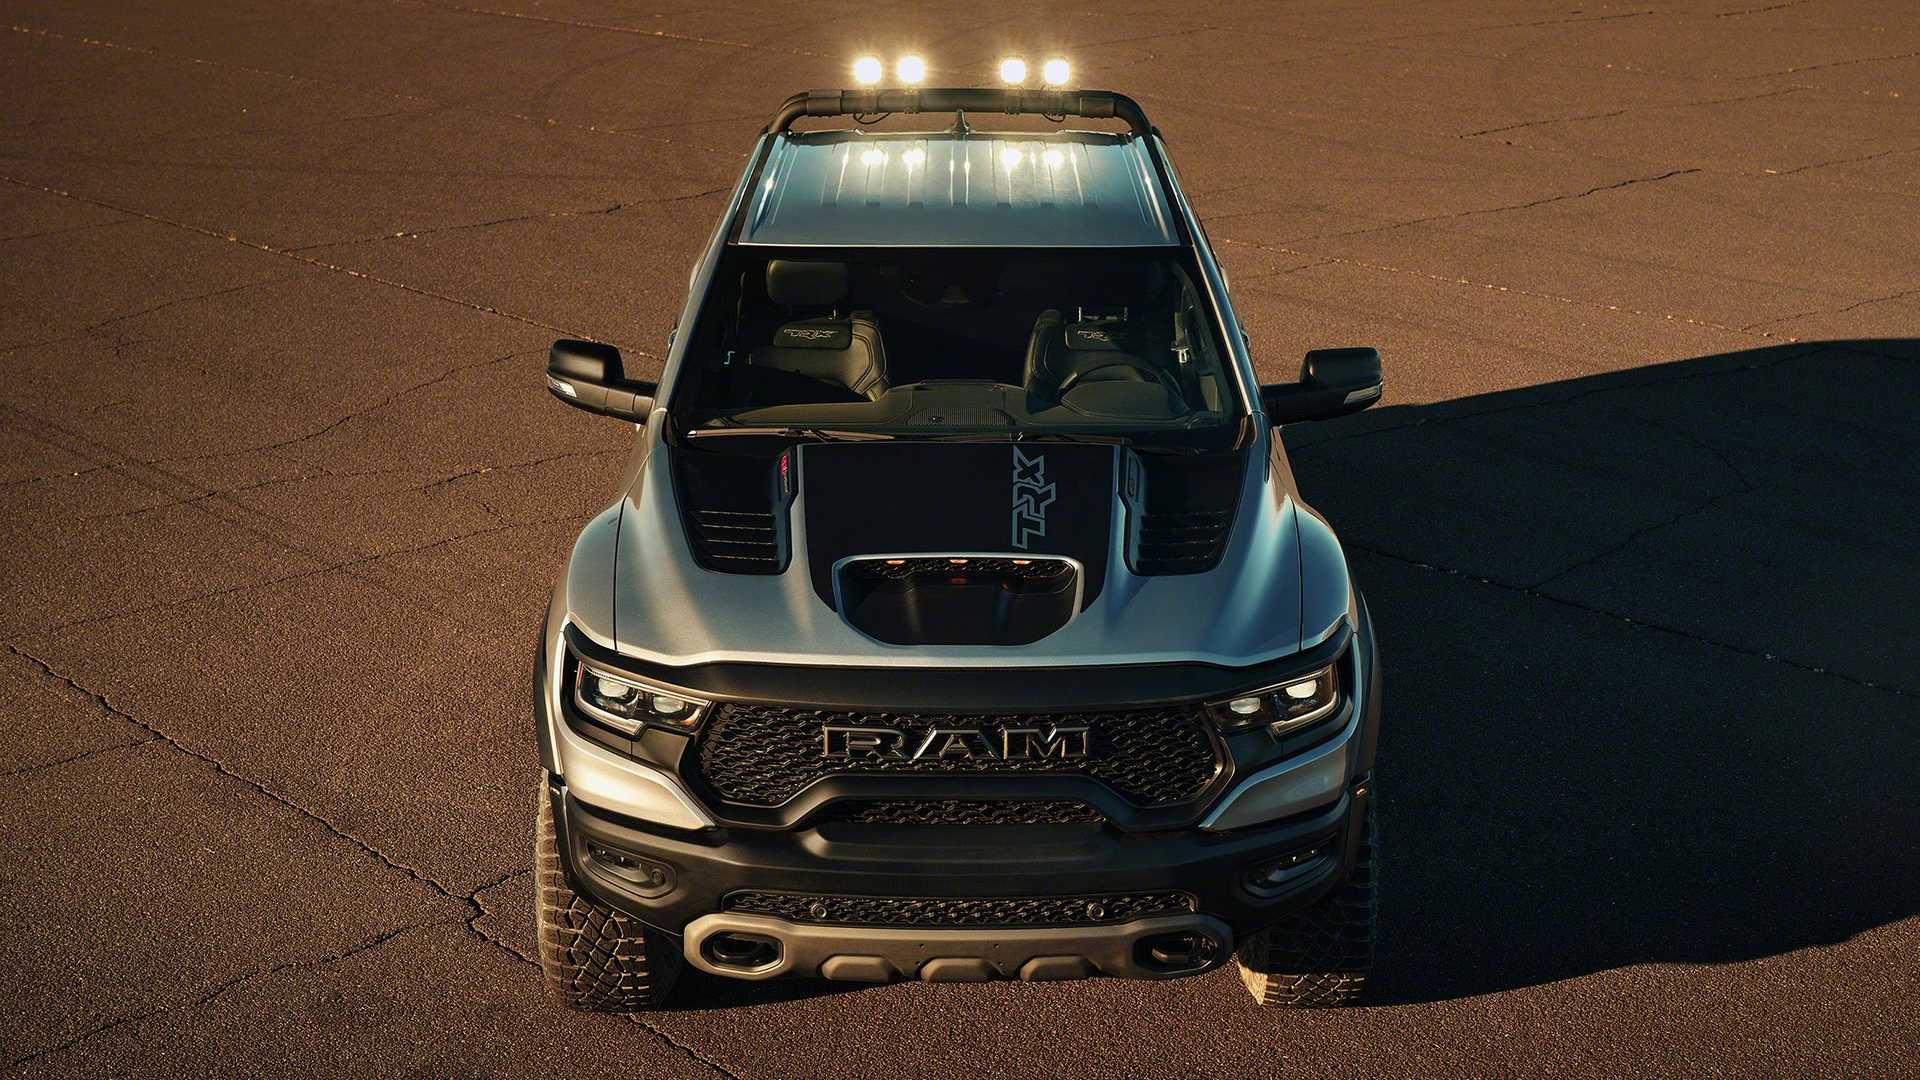 2021 Ram Trx Without The Hellcat Engine Not At Introduction